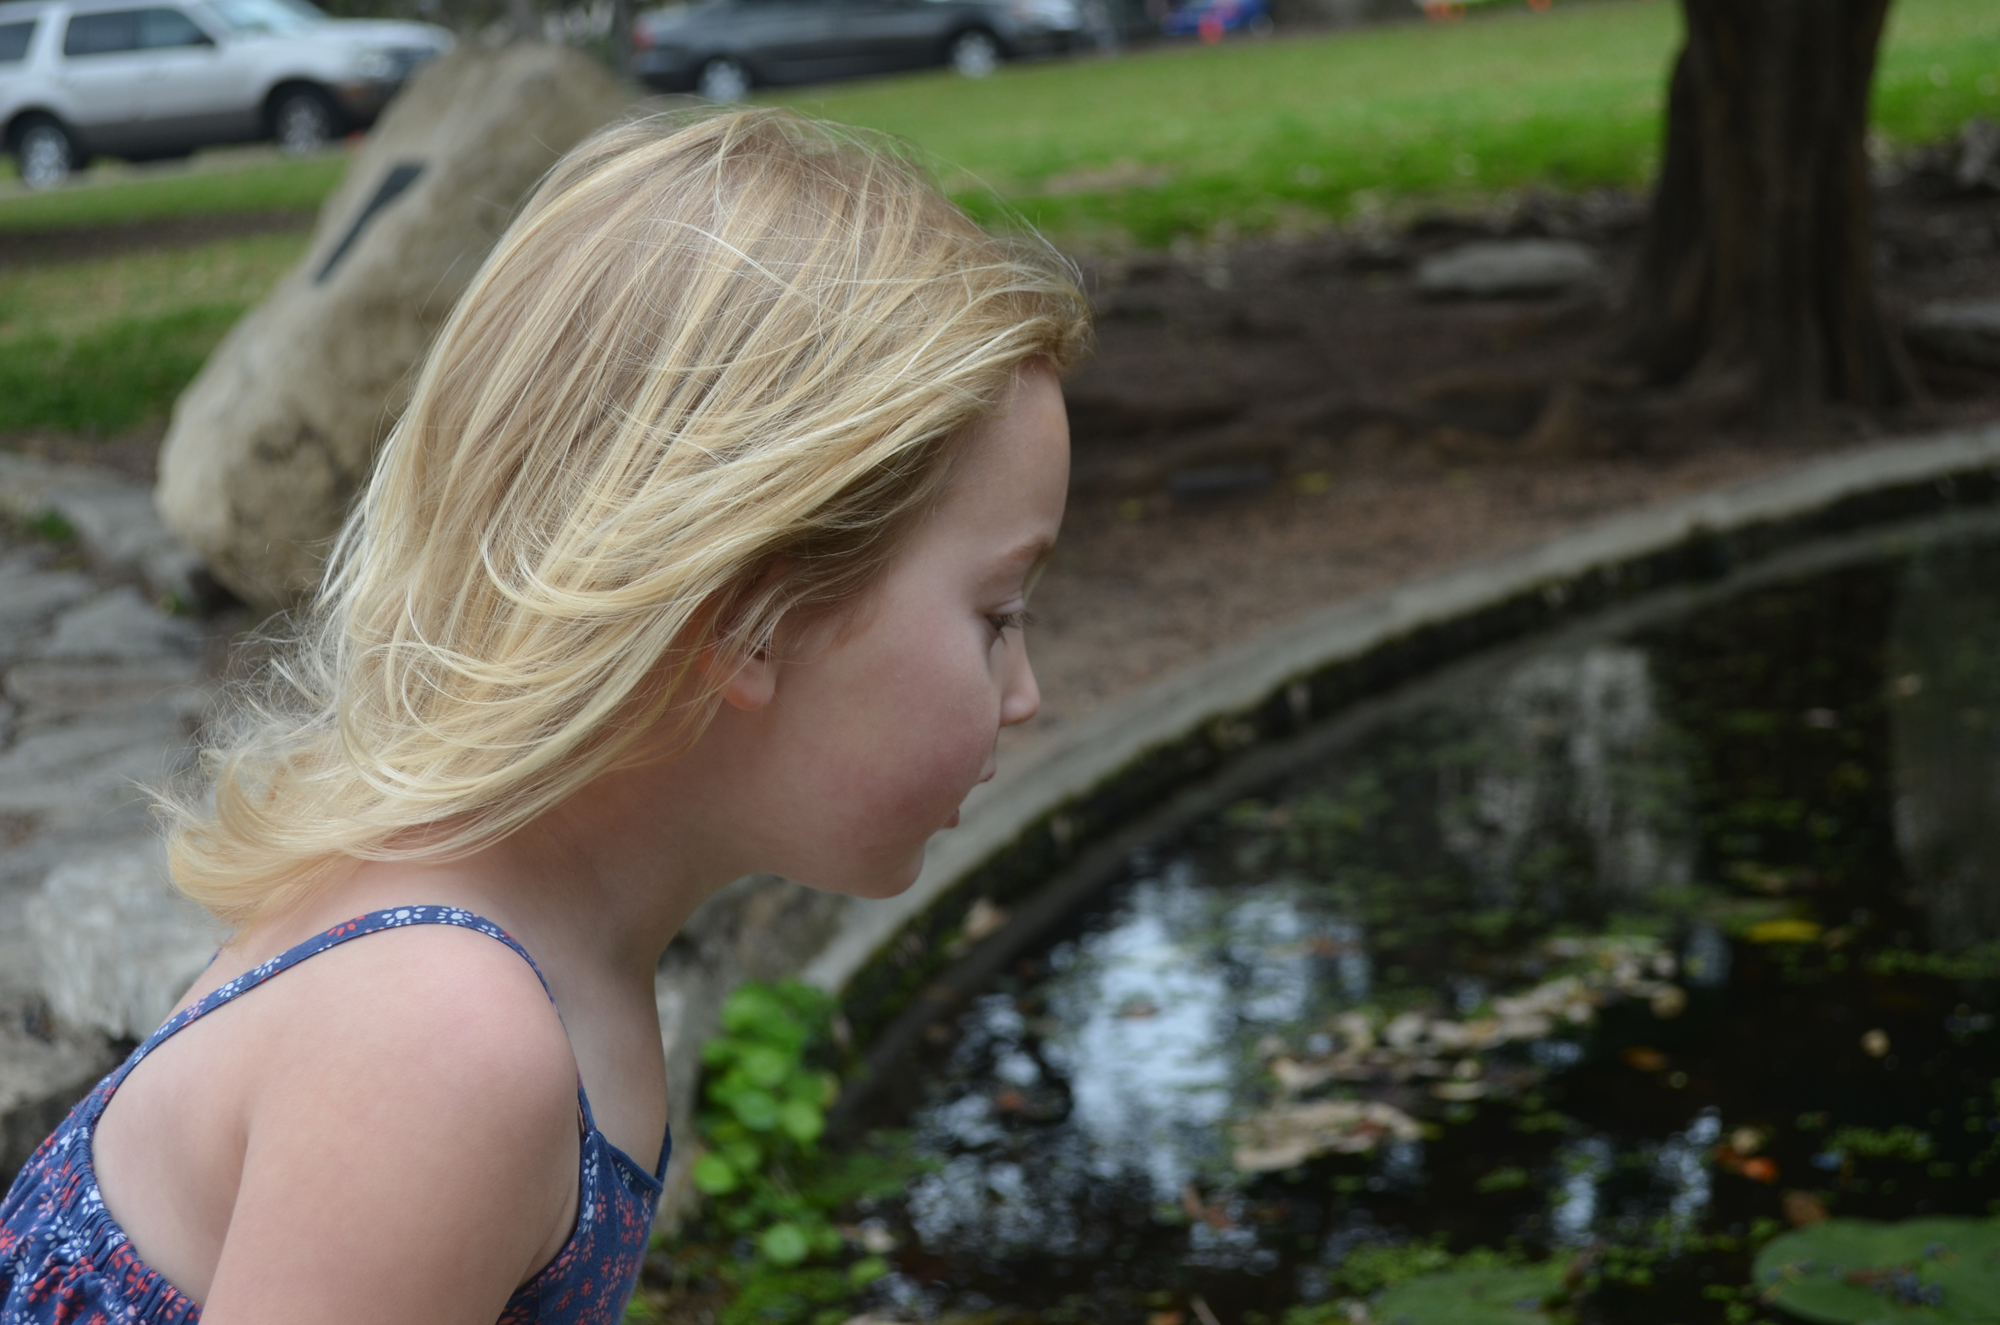 Isla at the turtle pond